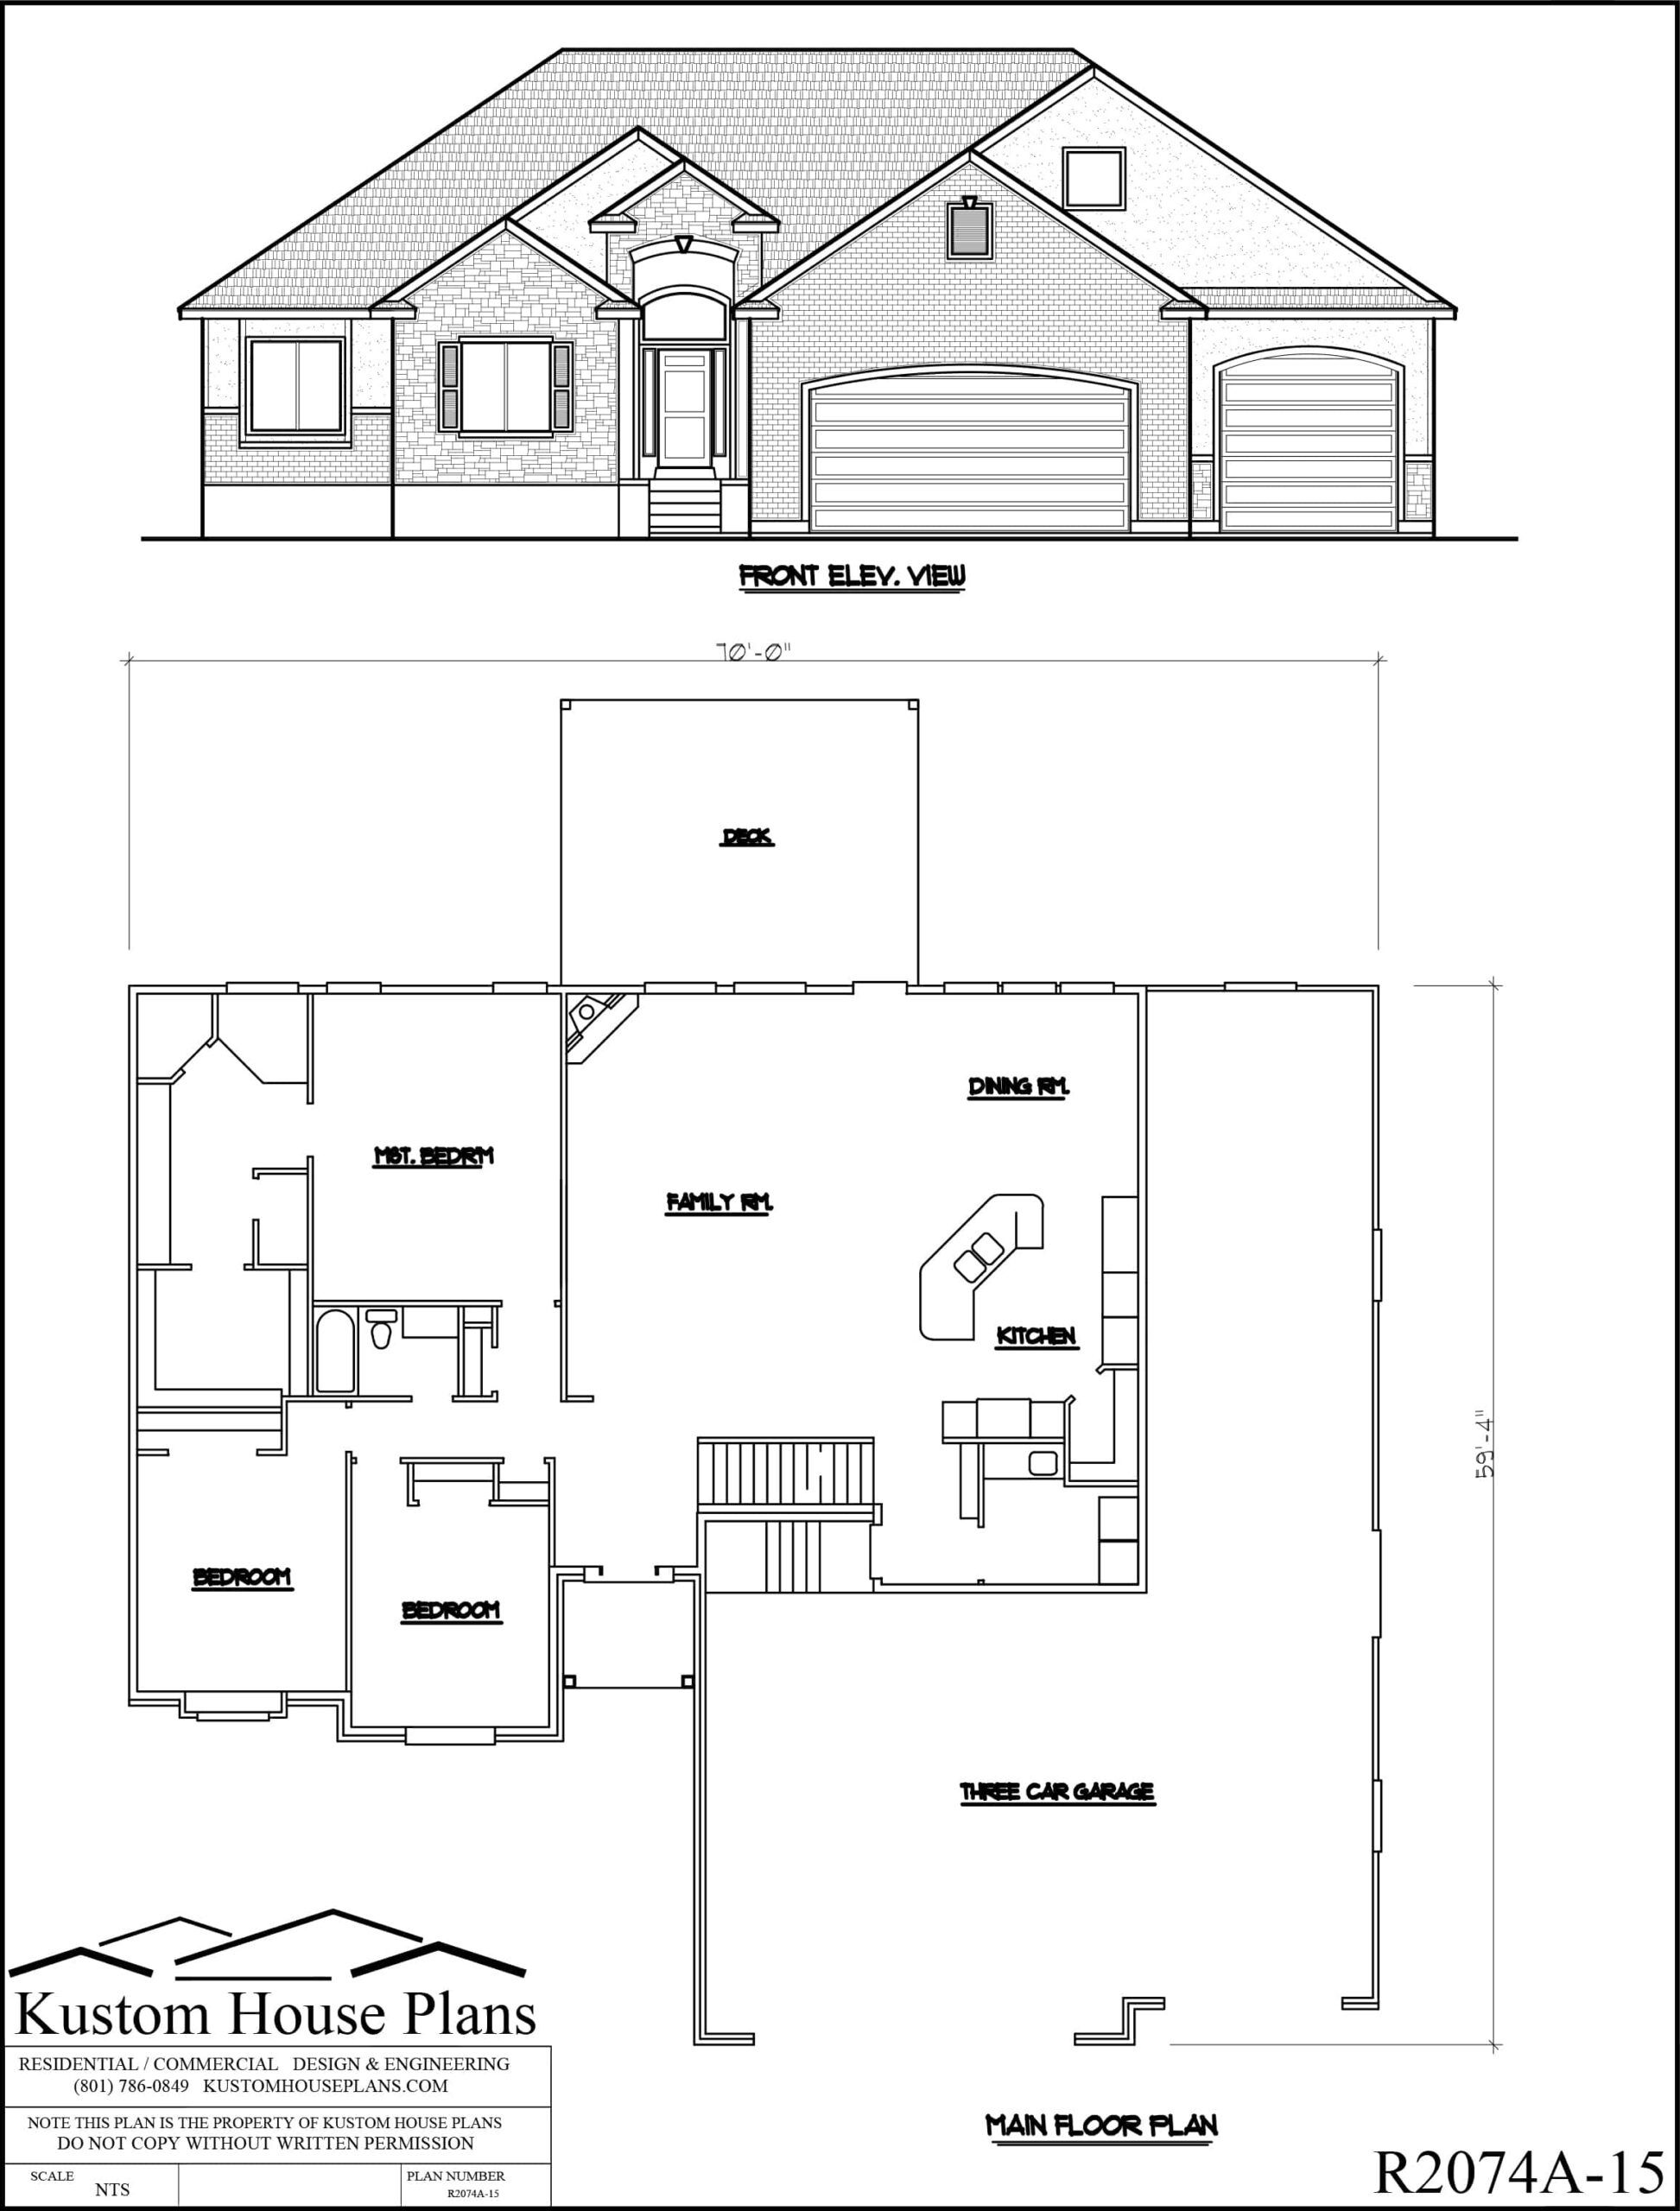 Kustom House Plans Utah House Plans How To Plan Minimalist Entryway